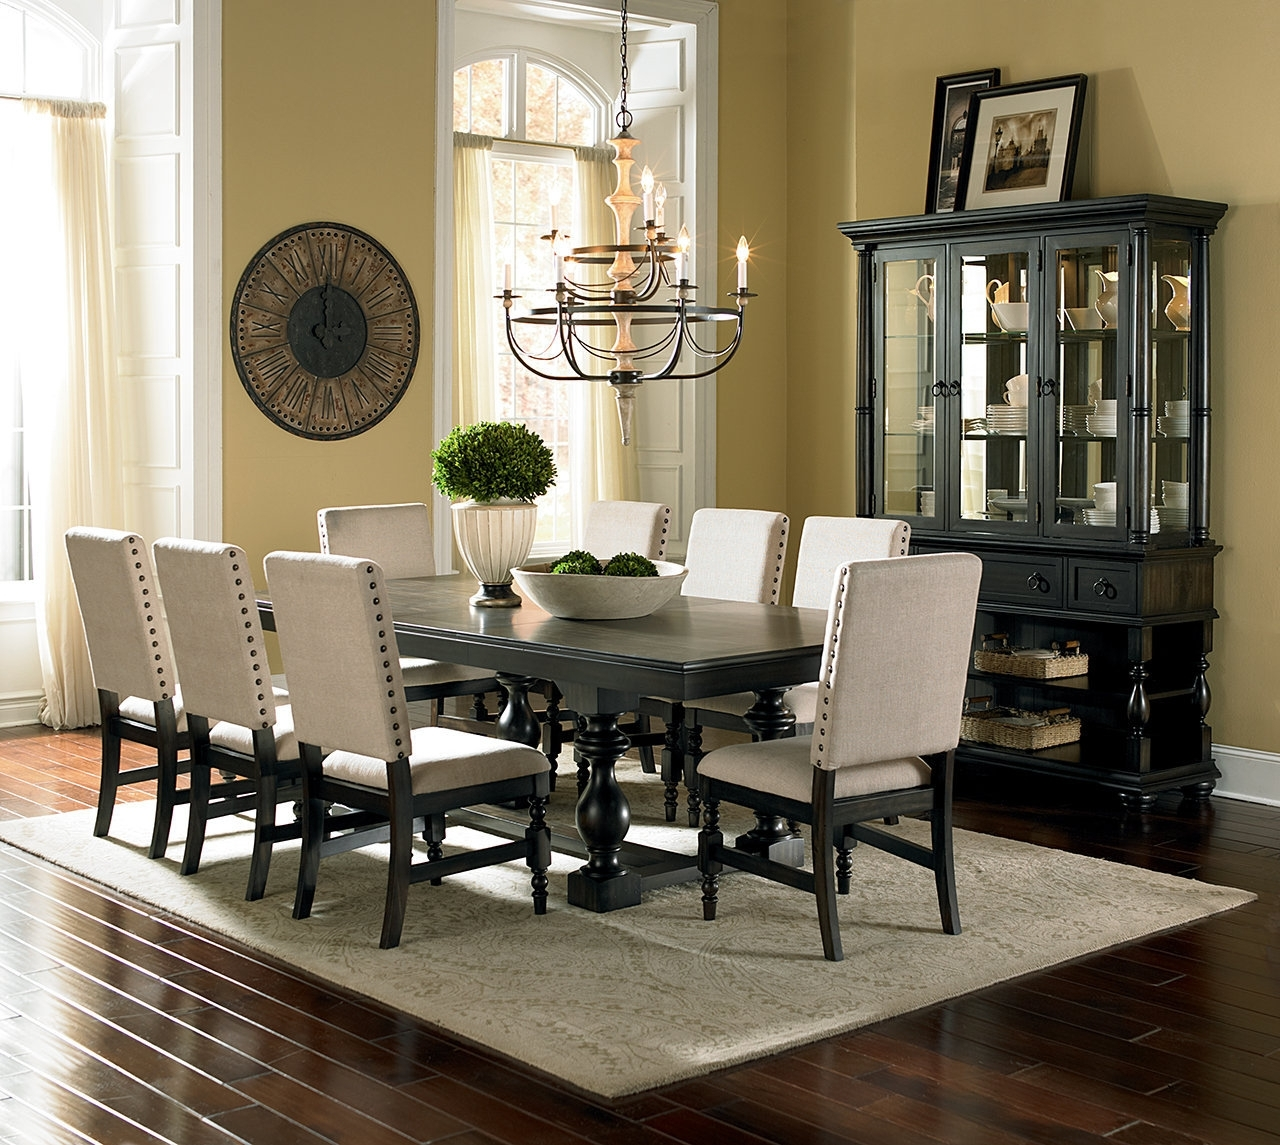 Plain Design Dining Room Sets With Fabric Chairs Norwood 6 Piece Inside Latest Norwood 6 Piece Rectangular Extension Dining Sets With Upholstered Side Chairs (Image 16 of 20)